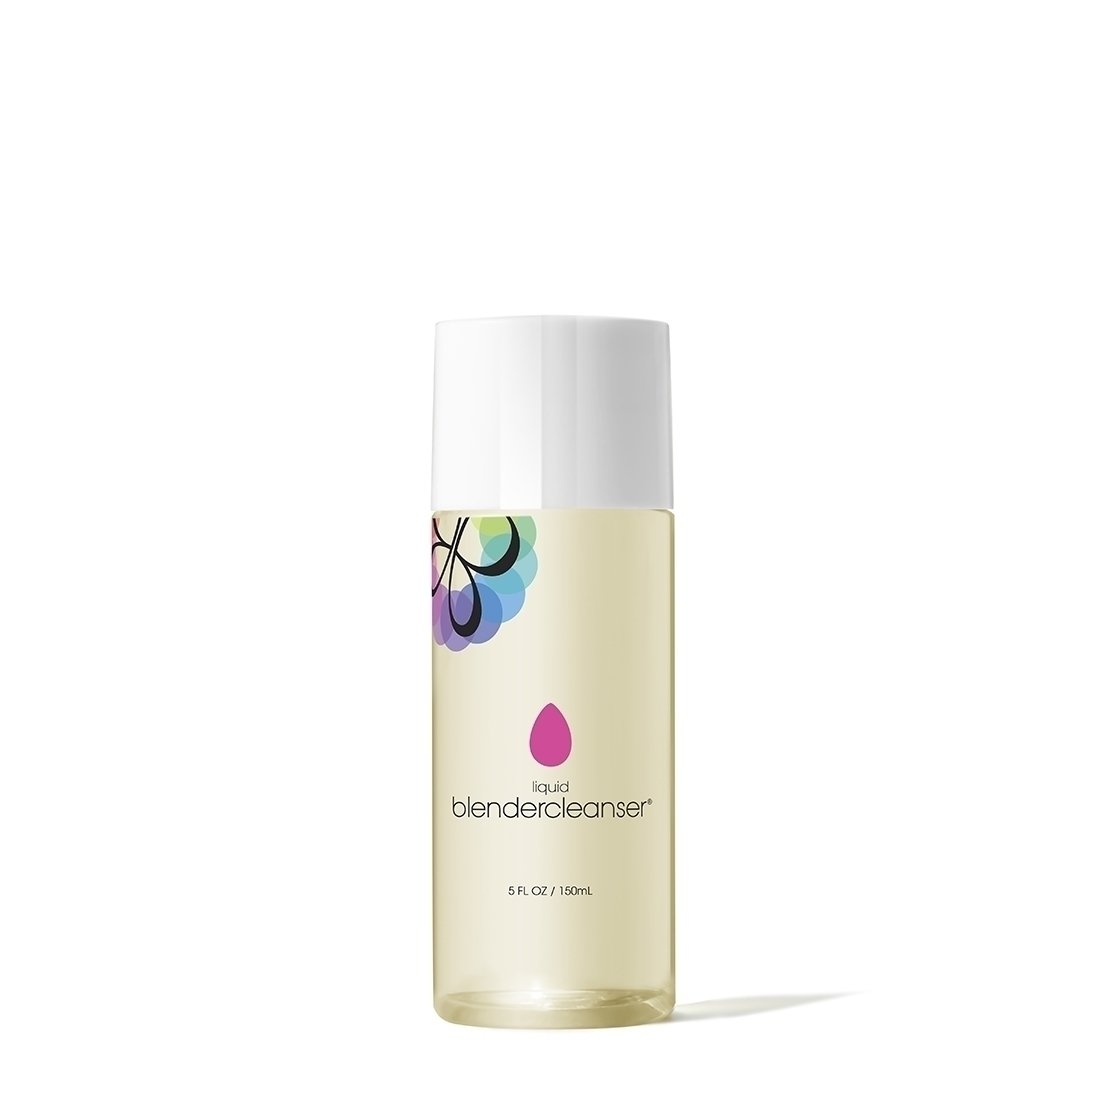 beautyblender liquid blendercleanser, 5 oz